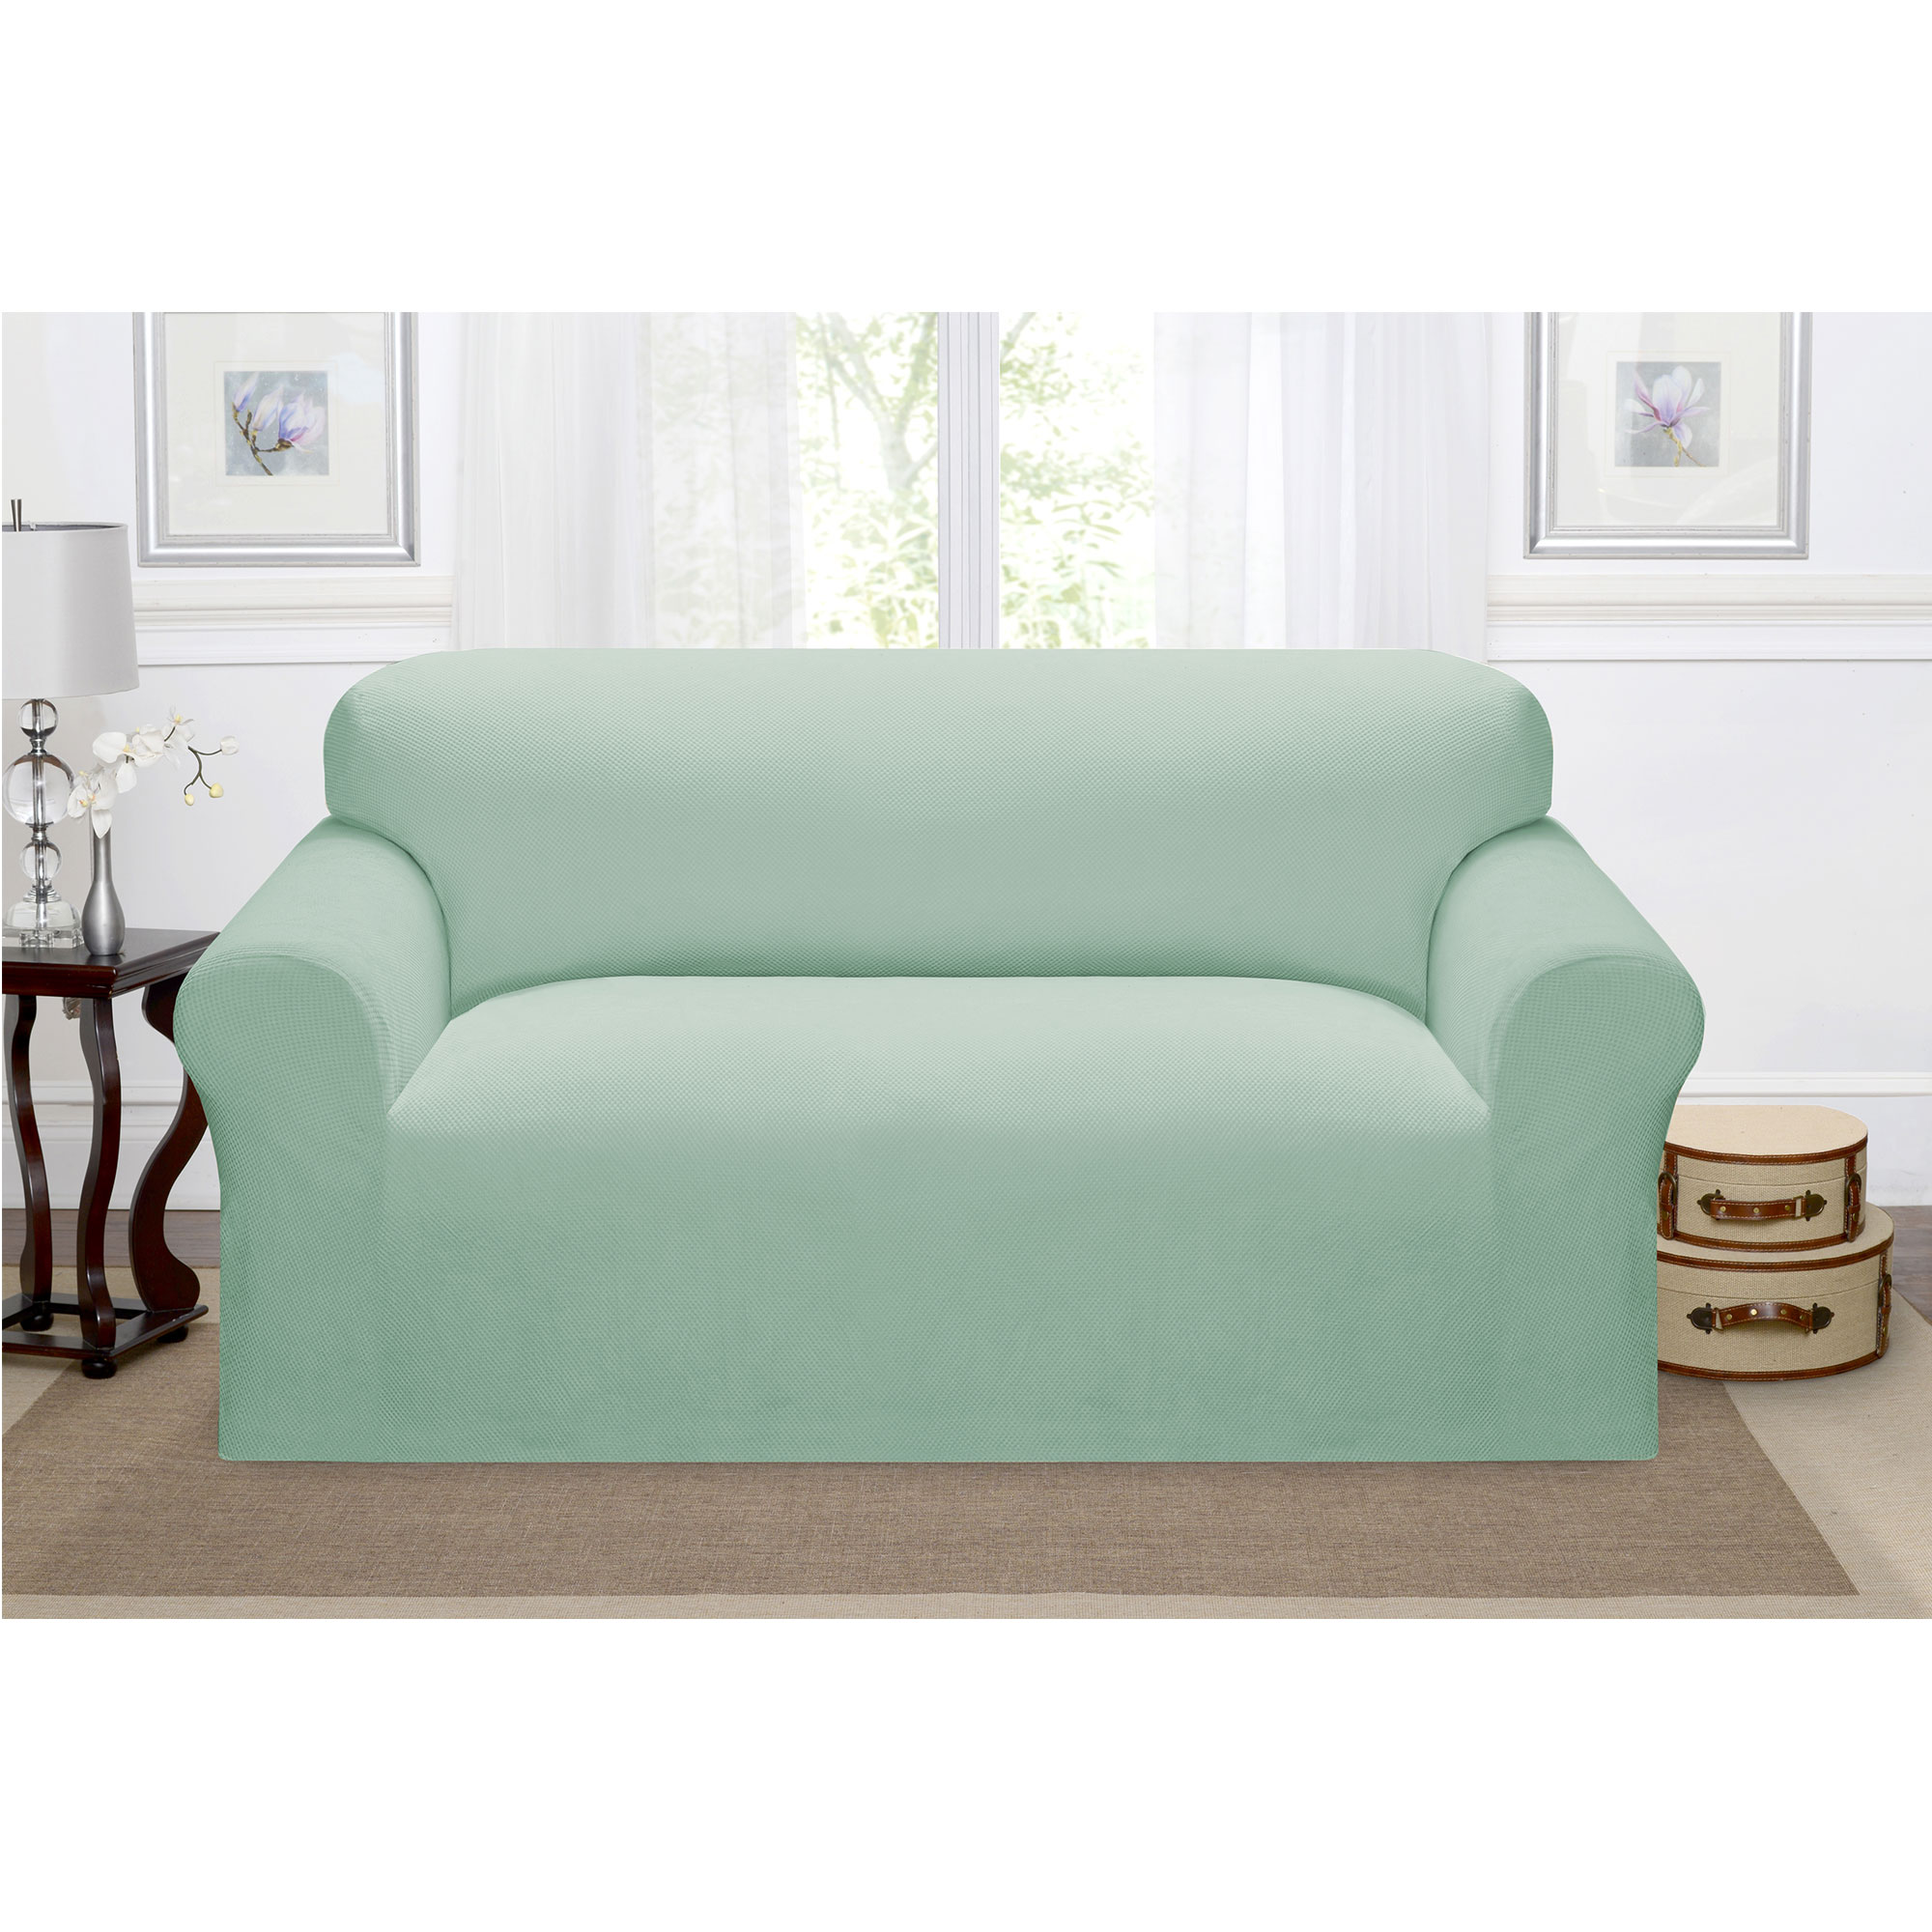 Madison Home Stretch Pique Furniture Slipcover, Soft Waffle Textured Pattern (Loveseat, Seaglass)